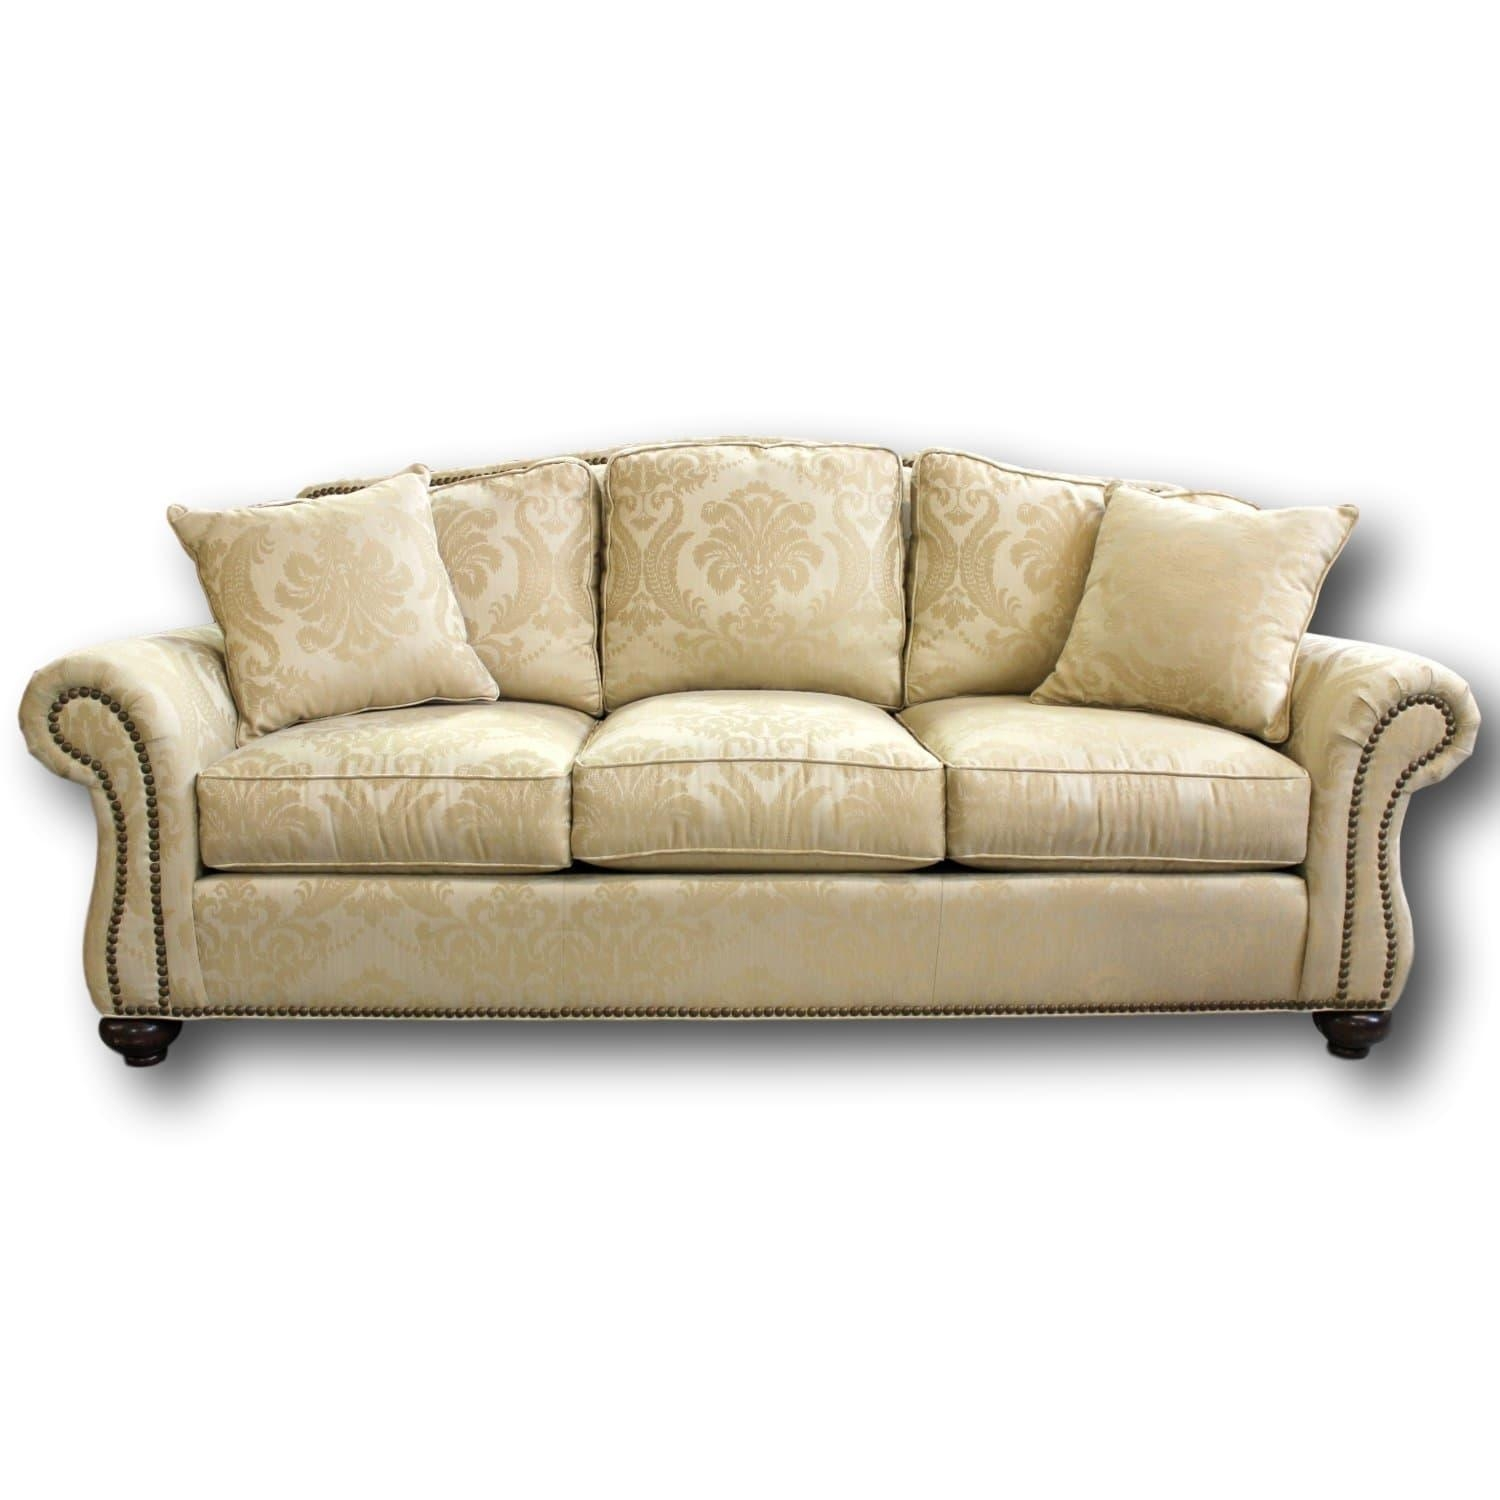 20 best collection of alan white couches sofa ideas